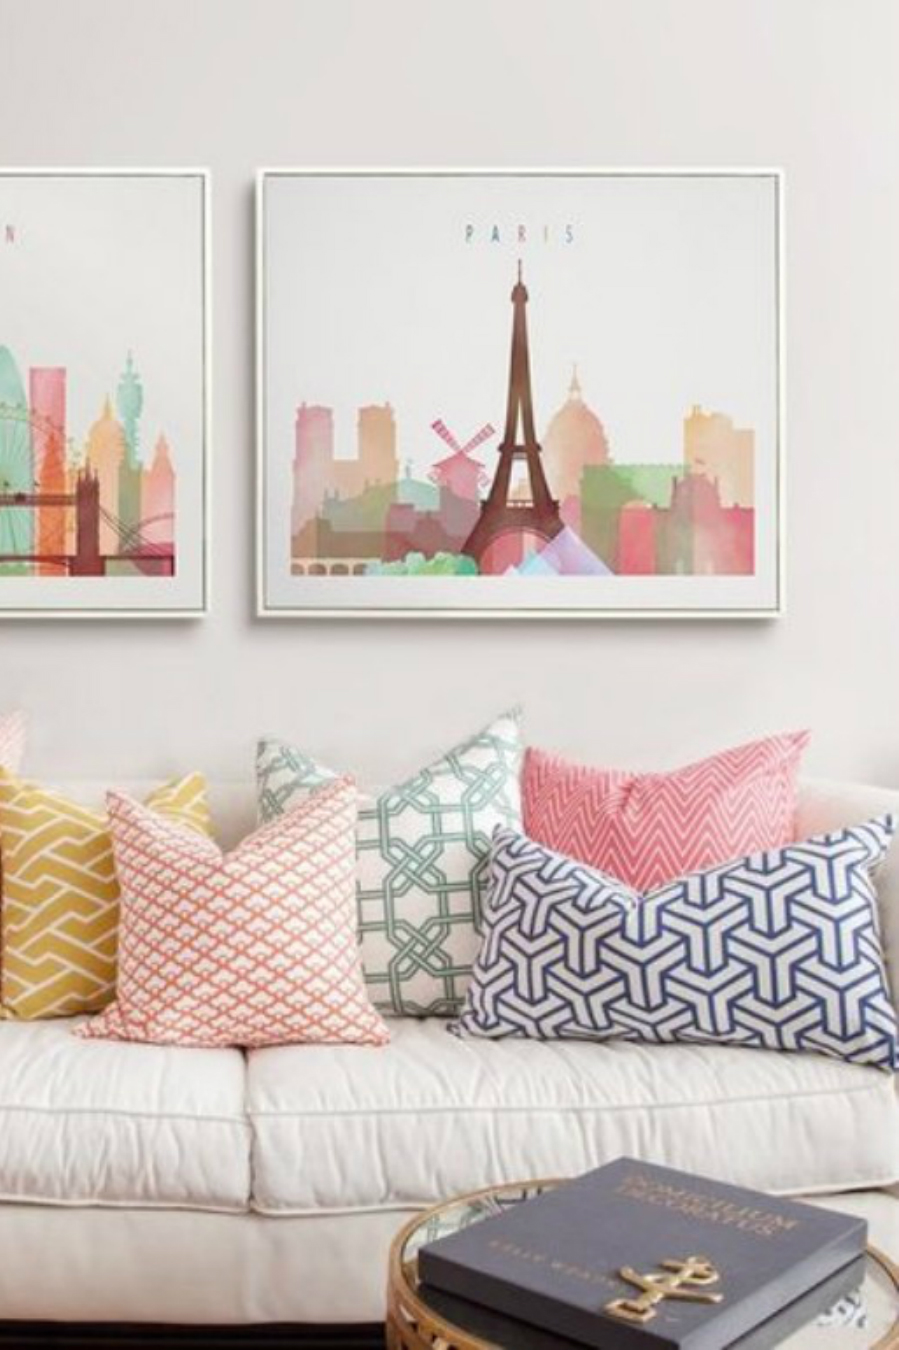 Upholstery Fabrics Inspiration: How to Style with Pillows upholstery fabrics inspiration Upholstery Fabrics Inspiration: How to Style with Decorative Pillows Upholstery Fabrics Inspiration How to Style with Decorative Pillows4